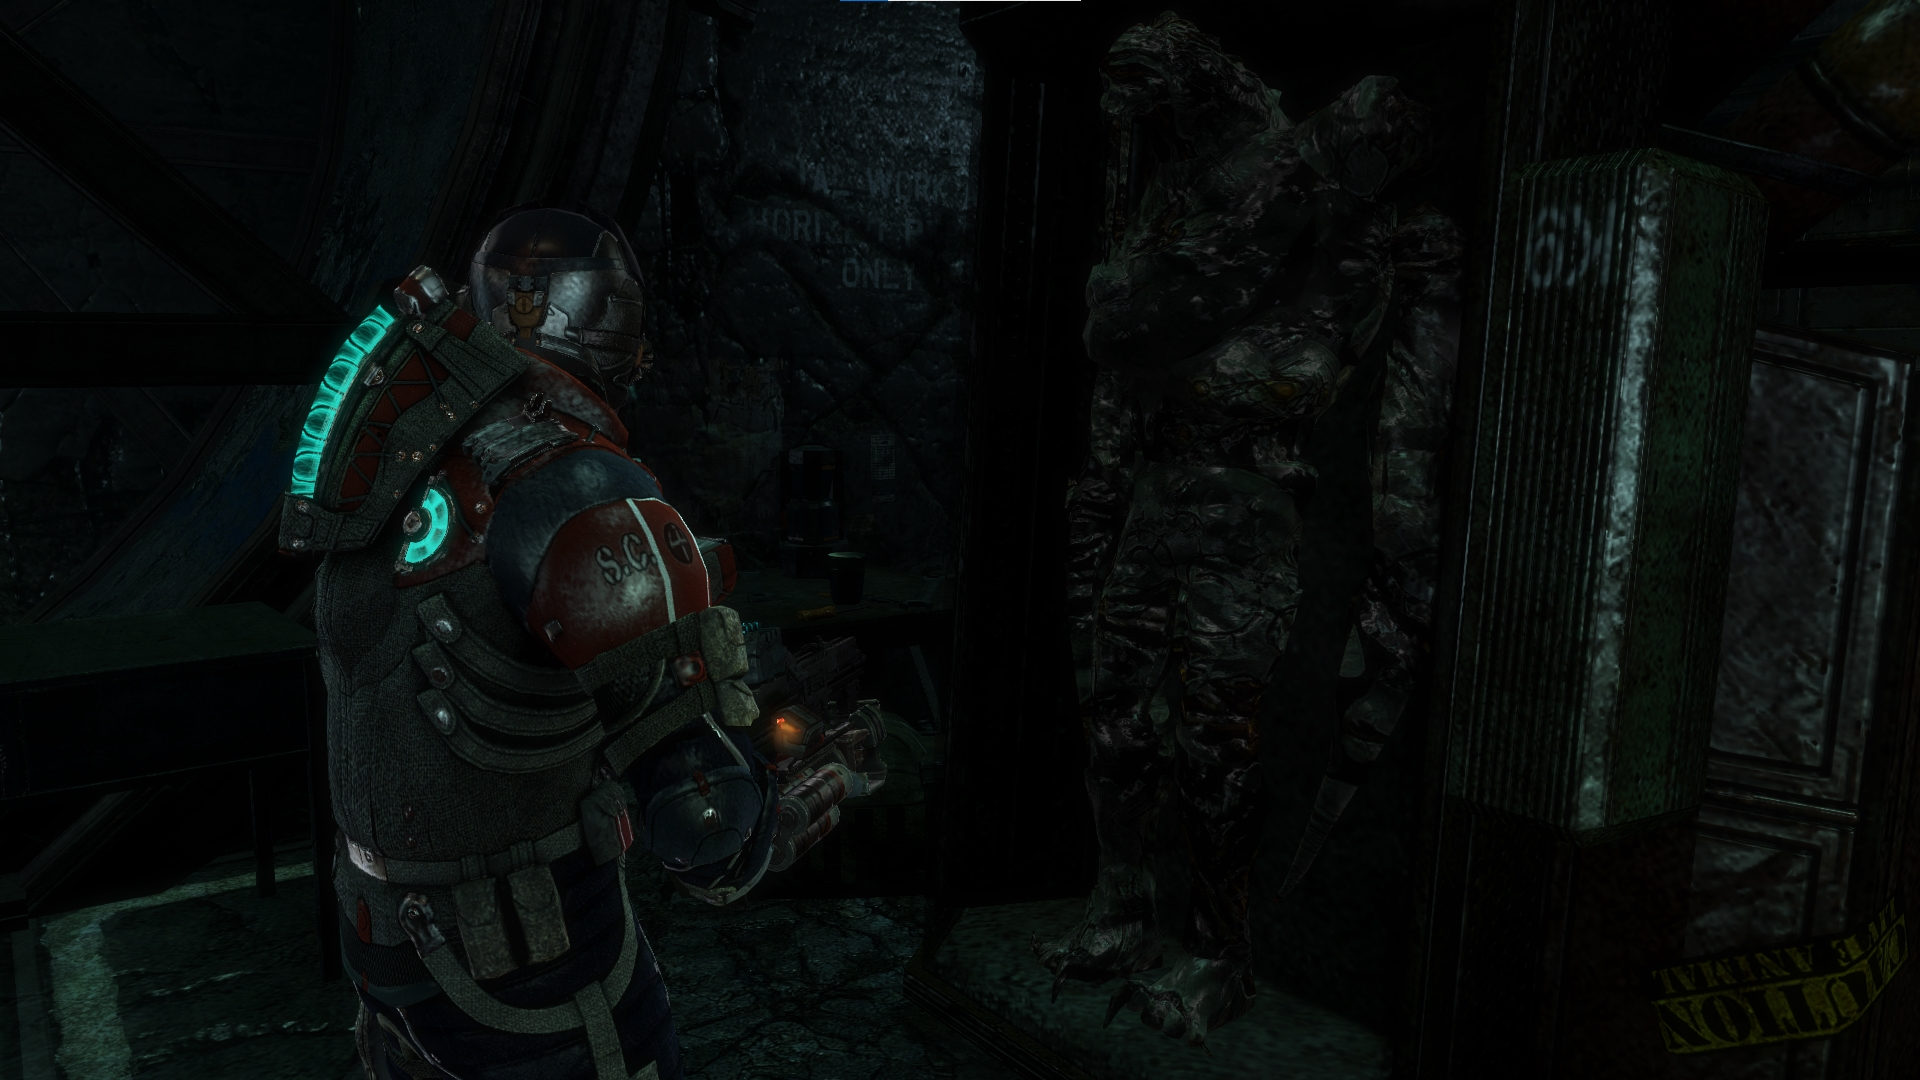 File:The Hunter Dead Space 3.jpg